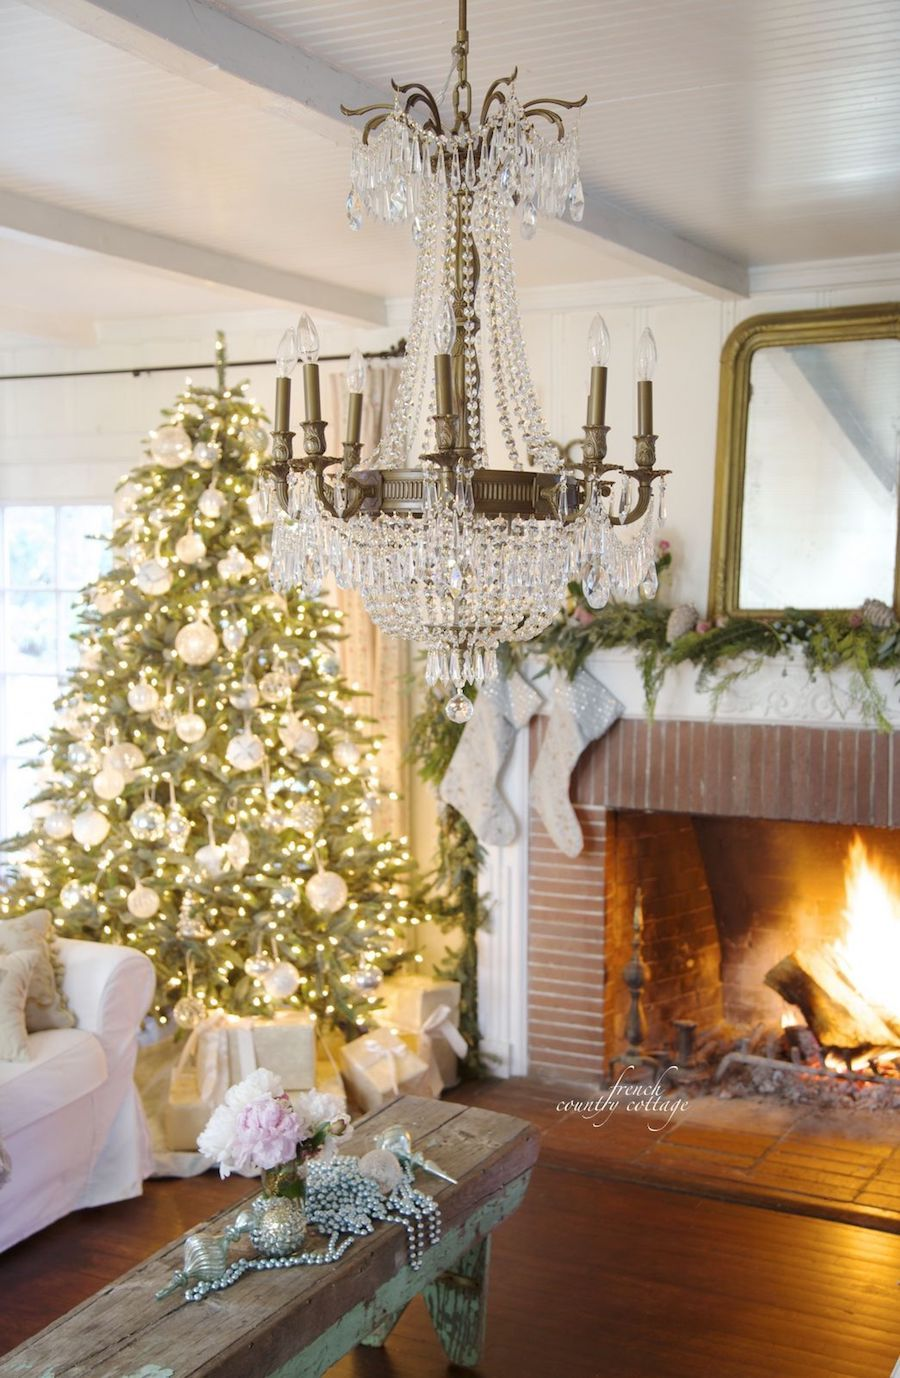 French Country Christmas Chandelier via Frenchcountrycottage #FrenchCountry #FrenchChristmas #FrenchCountryDecor